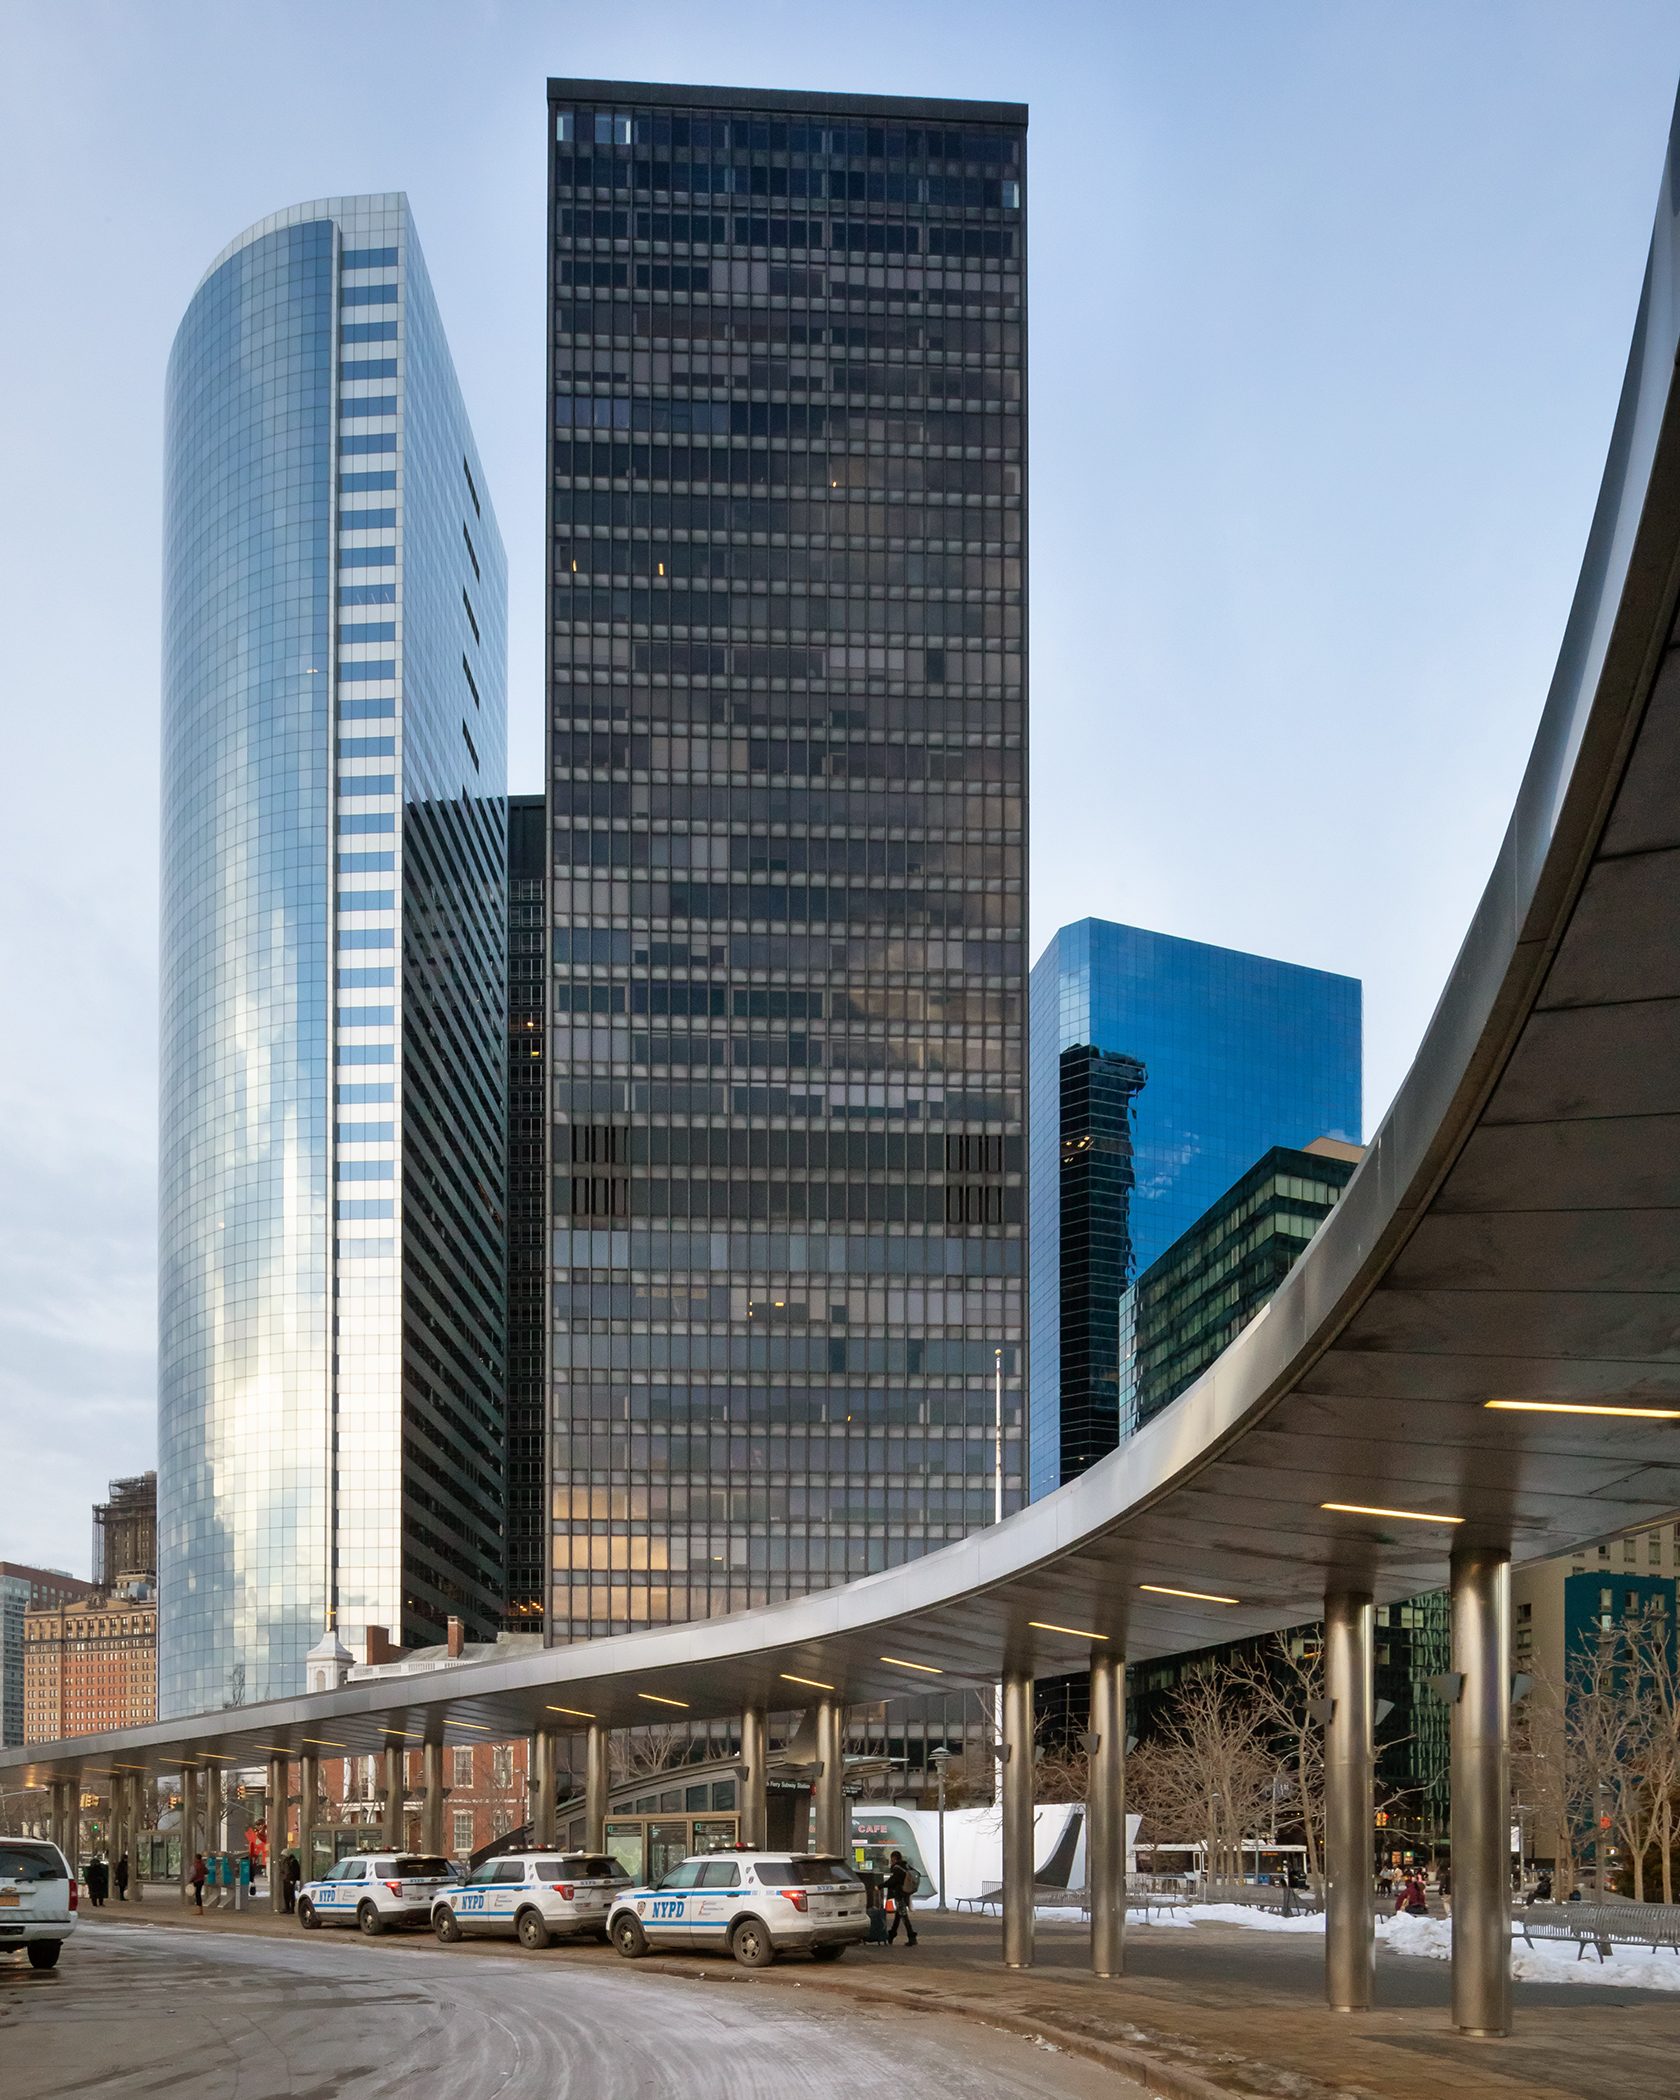 Manhattan's Financial District skyscrapers with covered walkway in the front